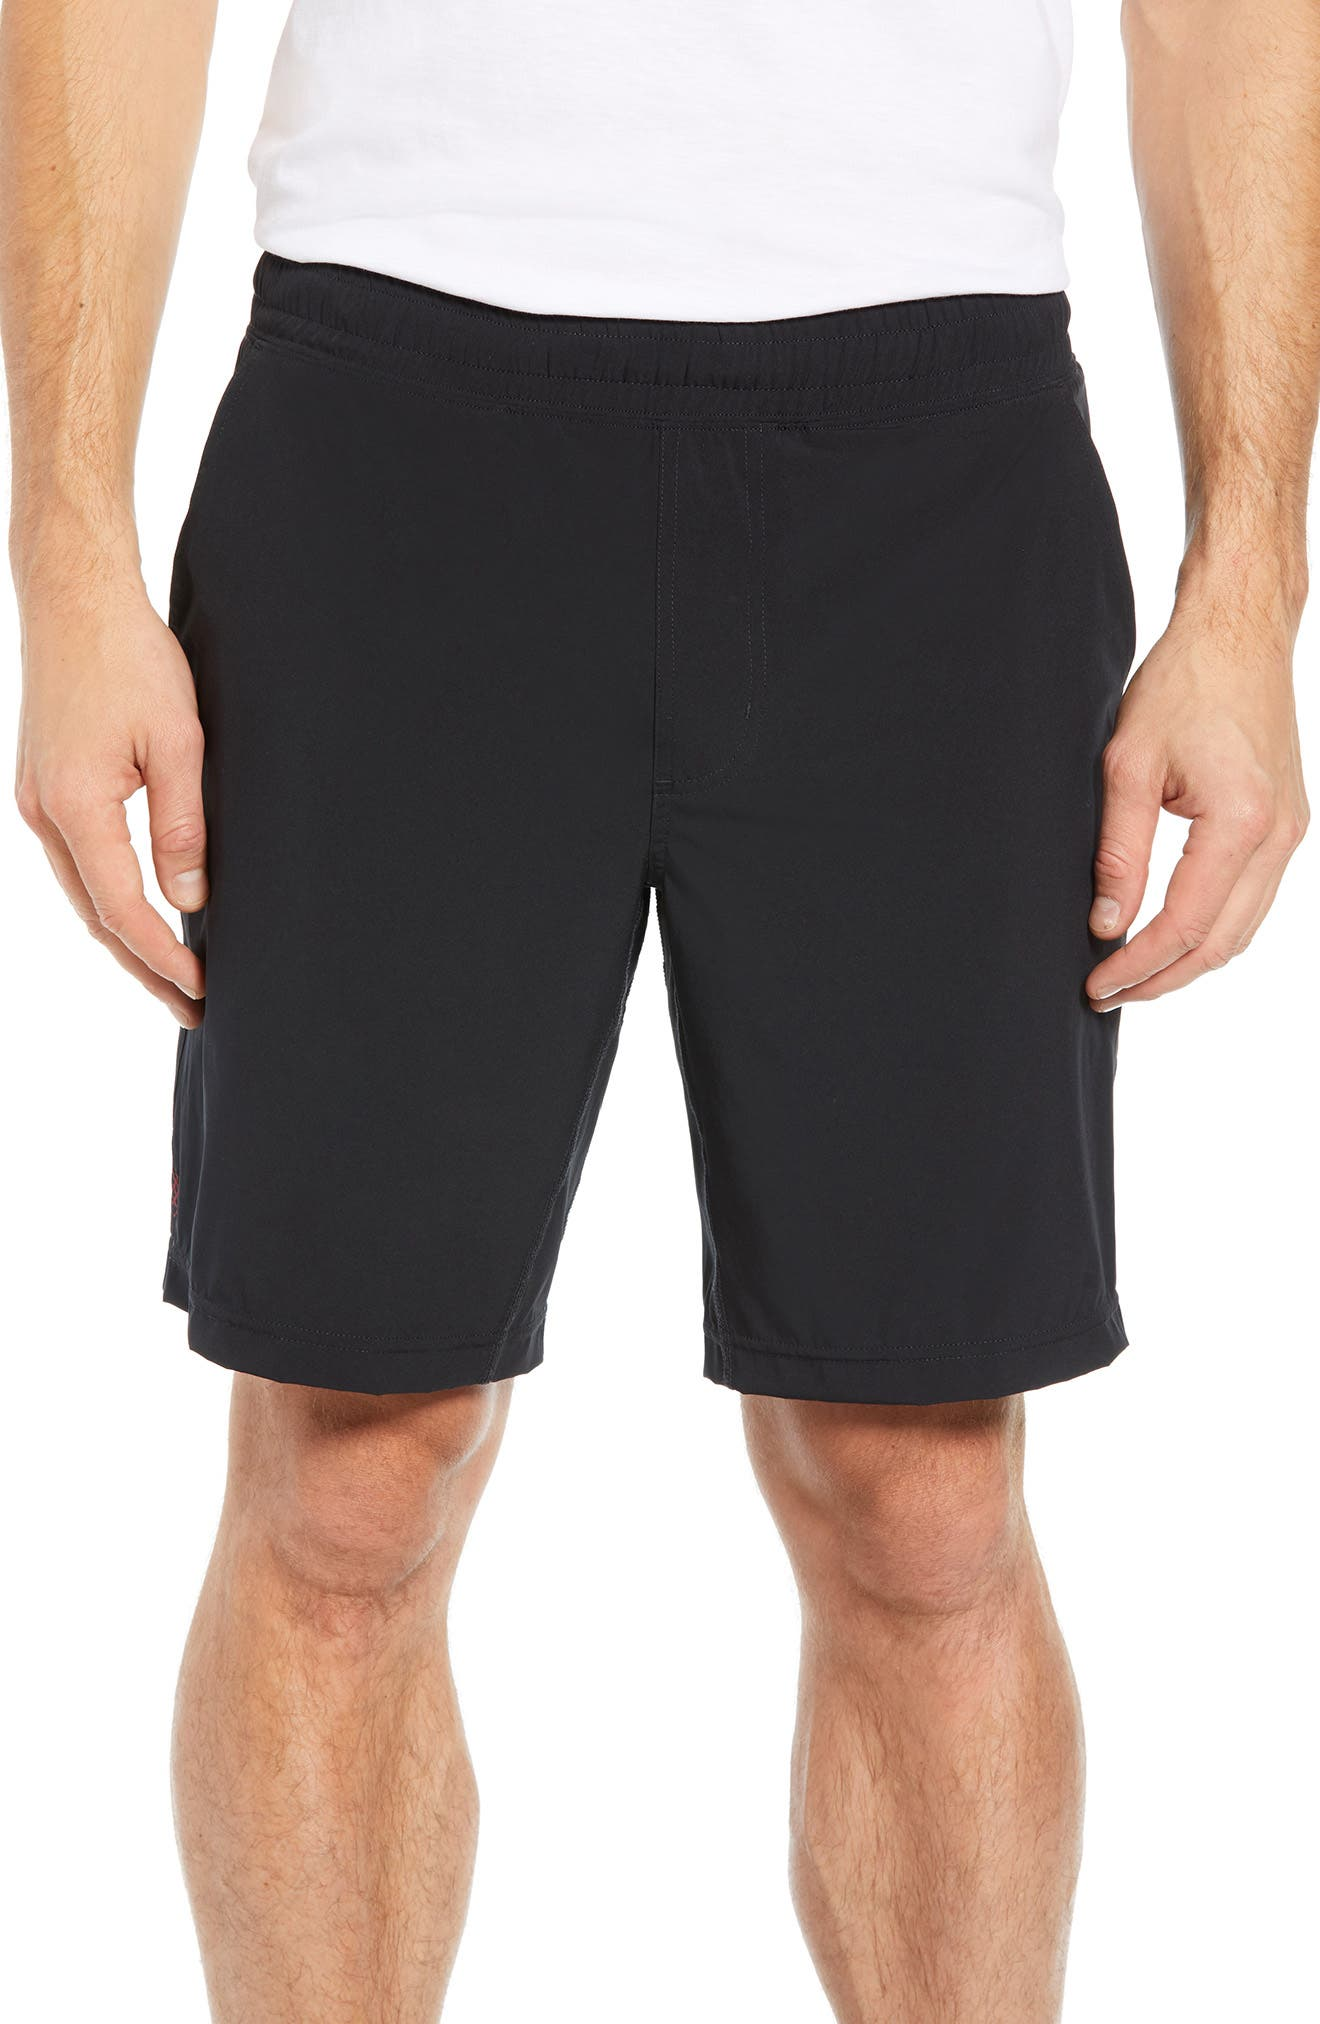 Mobility-enhanced four-way-stretch shorts provide ultimate active comfort with a water-resistant surface that\\\'s able to wick away moisture. A side zip stash pocket keeps cards and keys secure when you run. Style Name: Rhone Mako Lined Shorts. Style Number: 5729565. Available in stores.